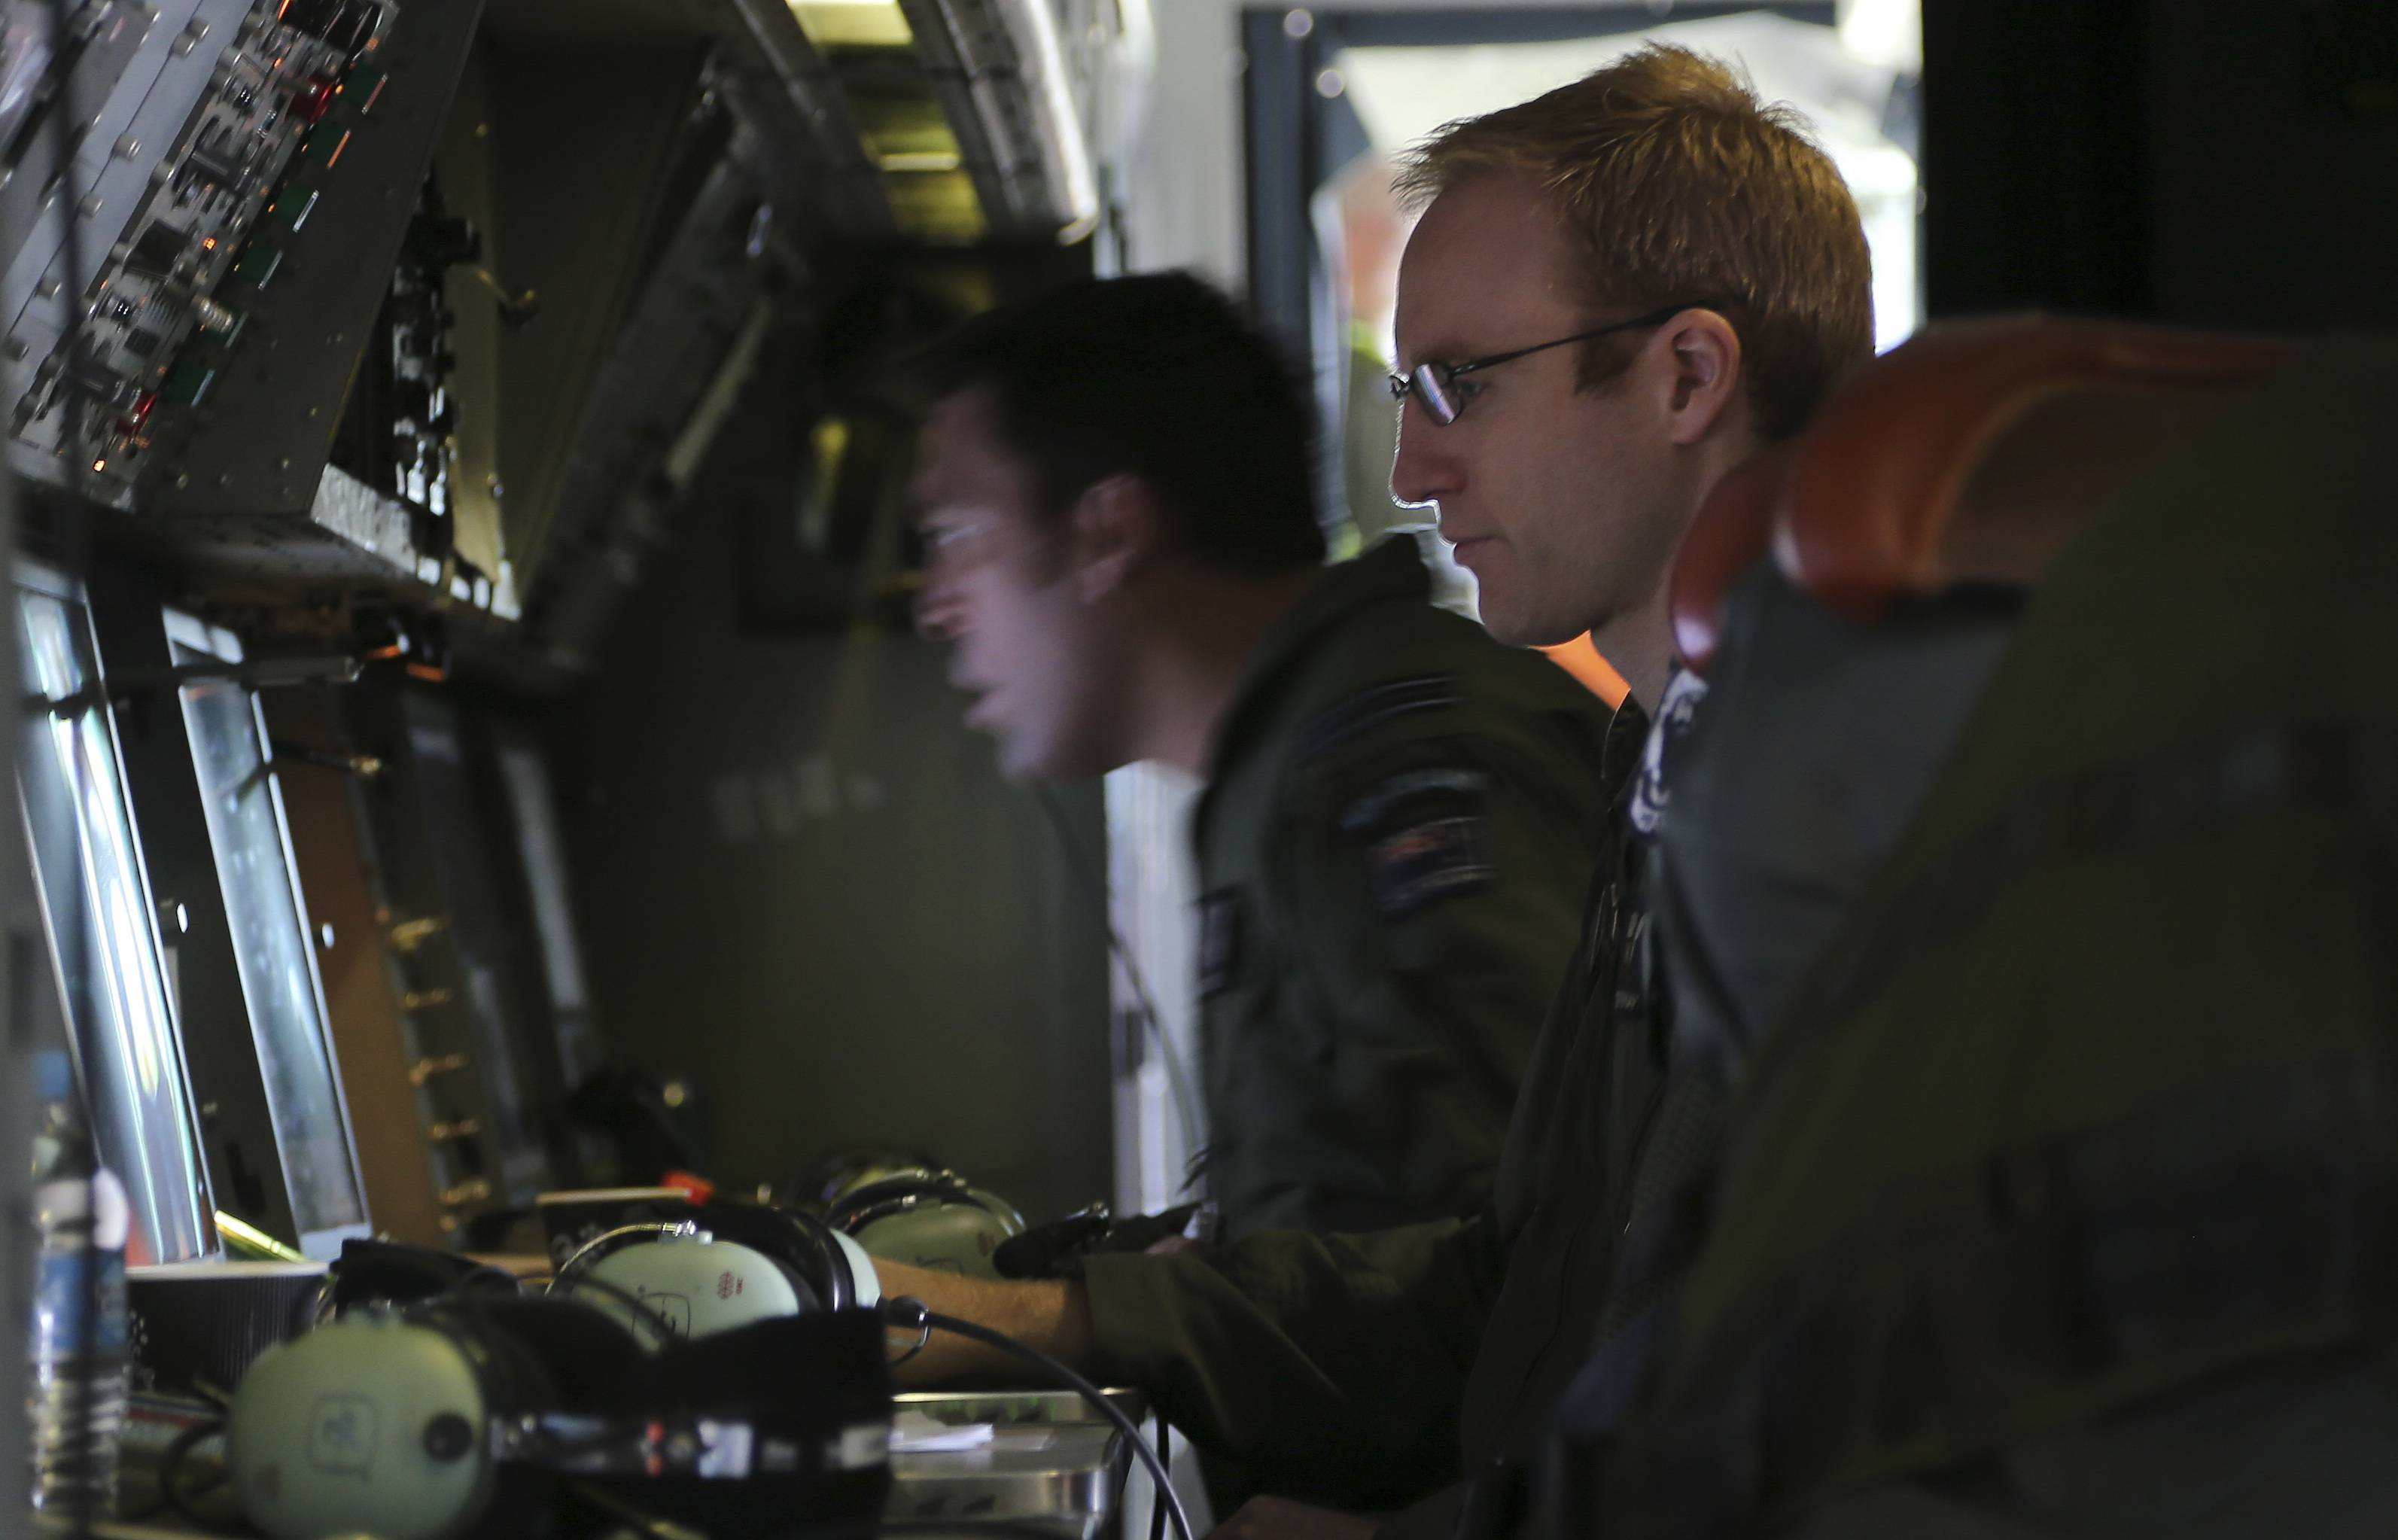 Flight Lieutenant Stephen Graham monitors a TAC station onboard a  Royal New Zealand Air Force P3 Orion during search operations for wreckage and debris of missing Malaysia Airlines Flight MH370 in the  southern Indian Ocean, near the coast of Western Australia, Friday, April 4, 2014. Ten military planes, four civil jets and nine ships will assist in the search today of 217,000 square kilometers, 1700kms north west of Perth.